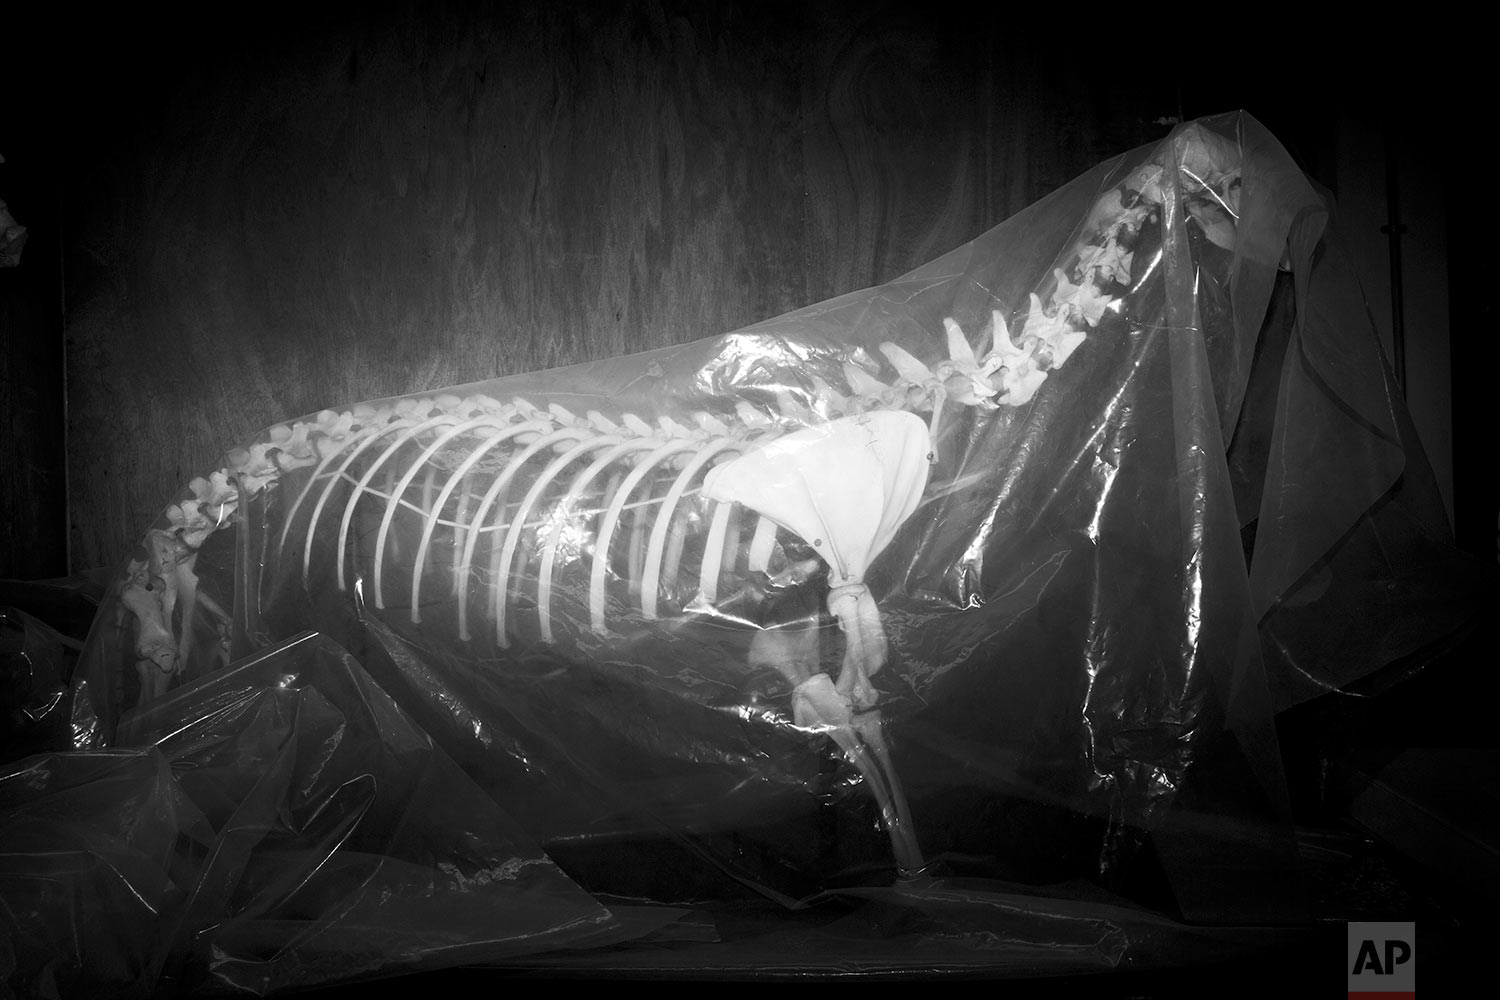 In this Thursday, June 22, 2017 photo, a transparent sheet covers a seal skeleton in the collections storeroom of the Steinhardt Museum of Natural History in Tel Aviv, Israel. (AP Photo/Oded Balilty)